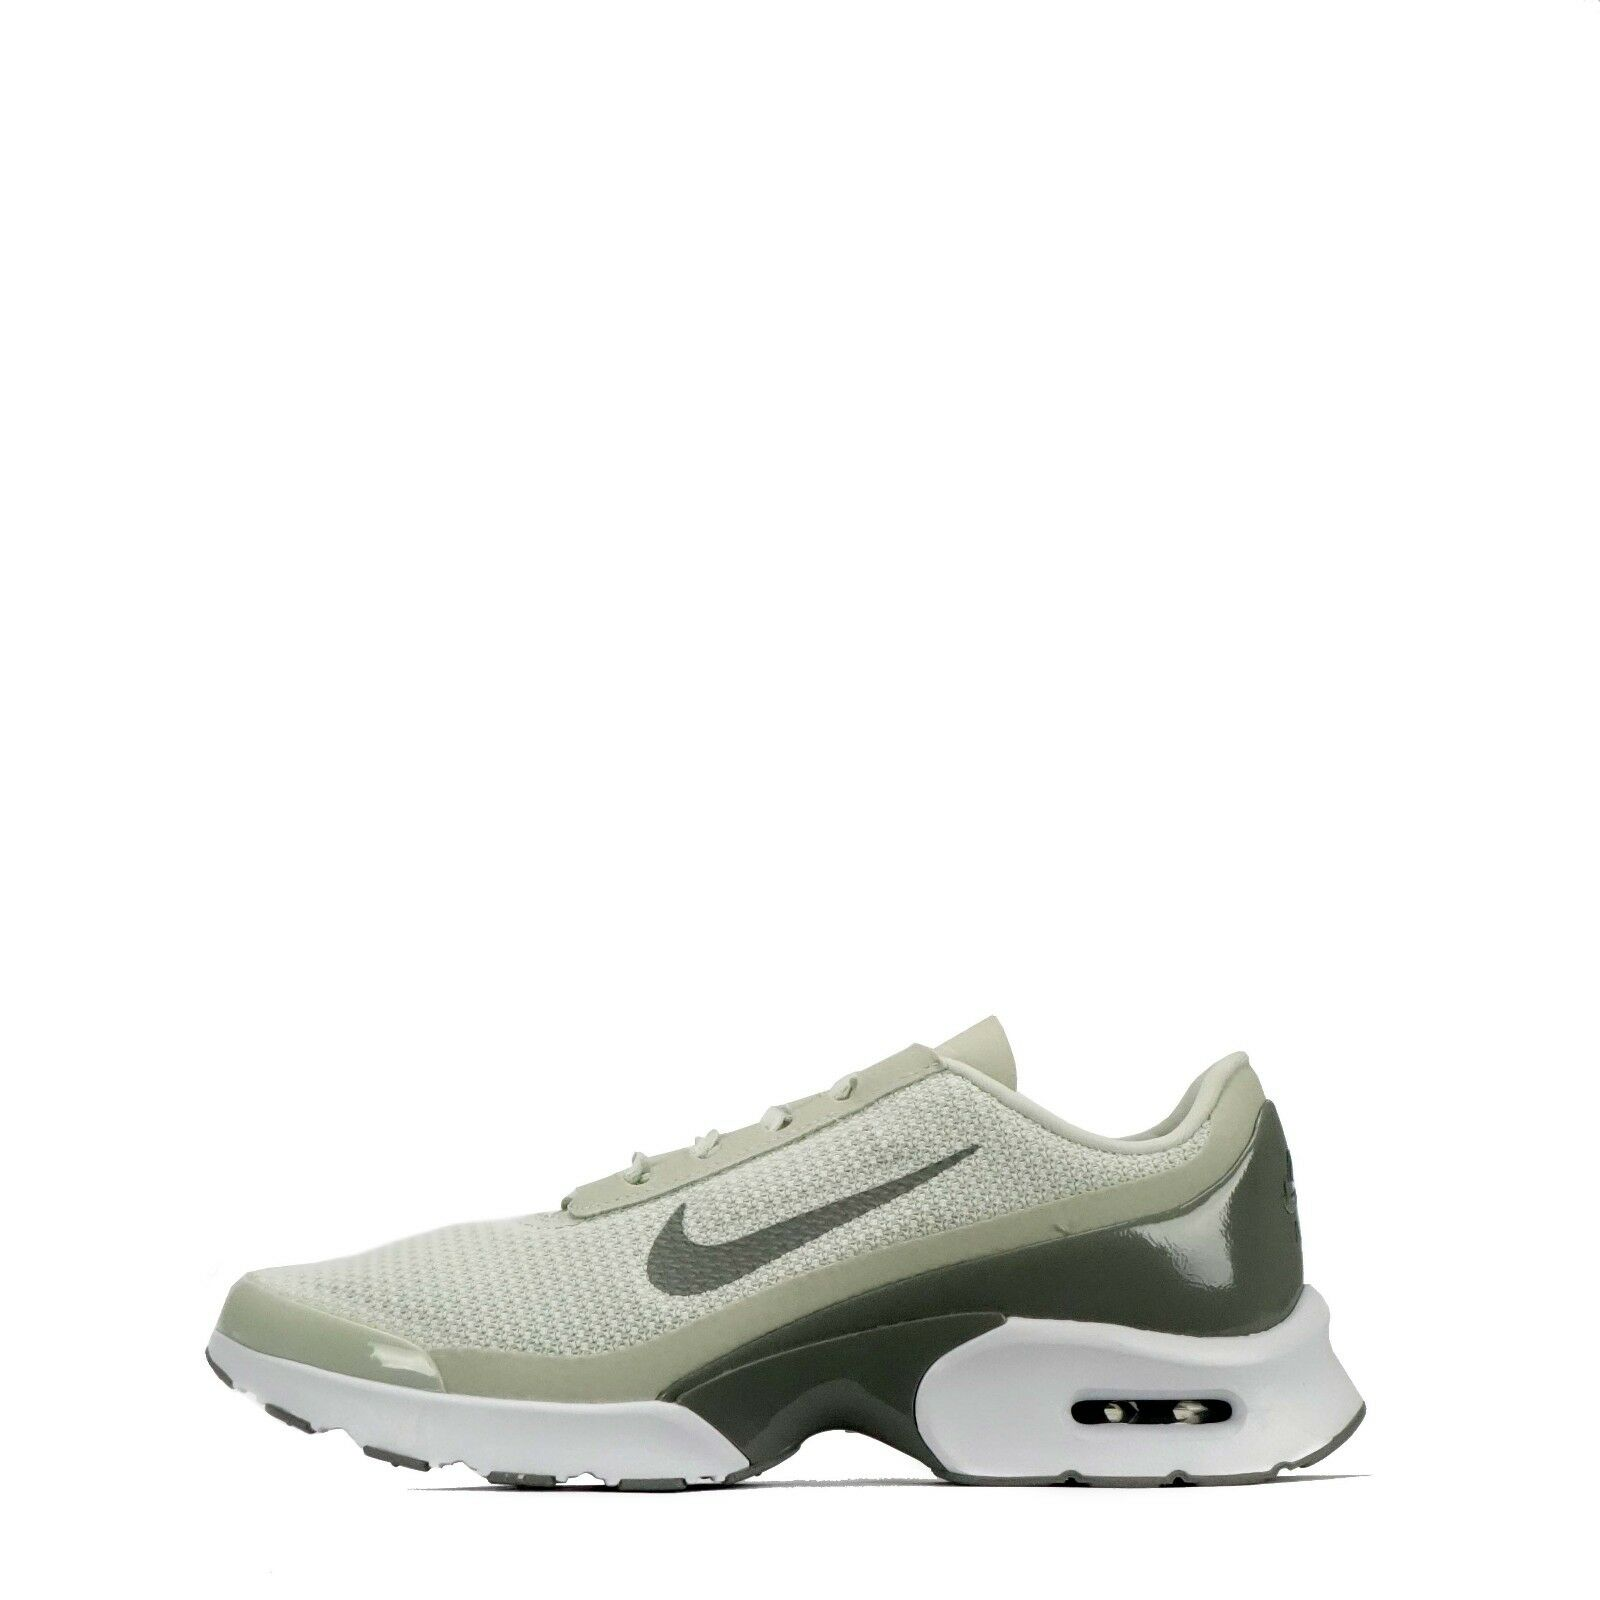 Nike Occasionnels Max Formateurs Femmes Jewell Air rZ54qr